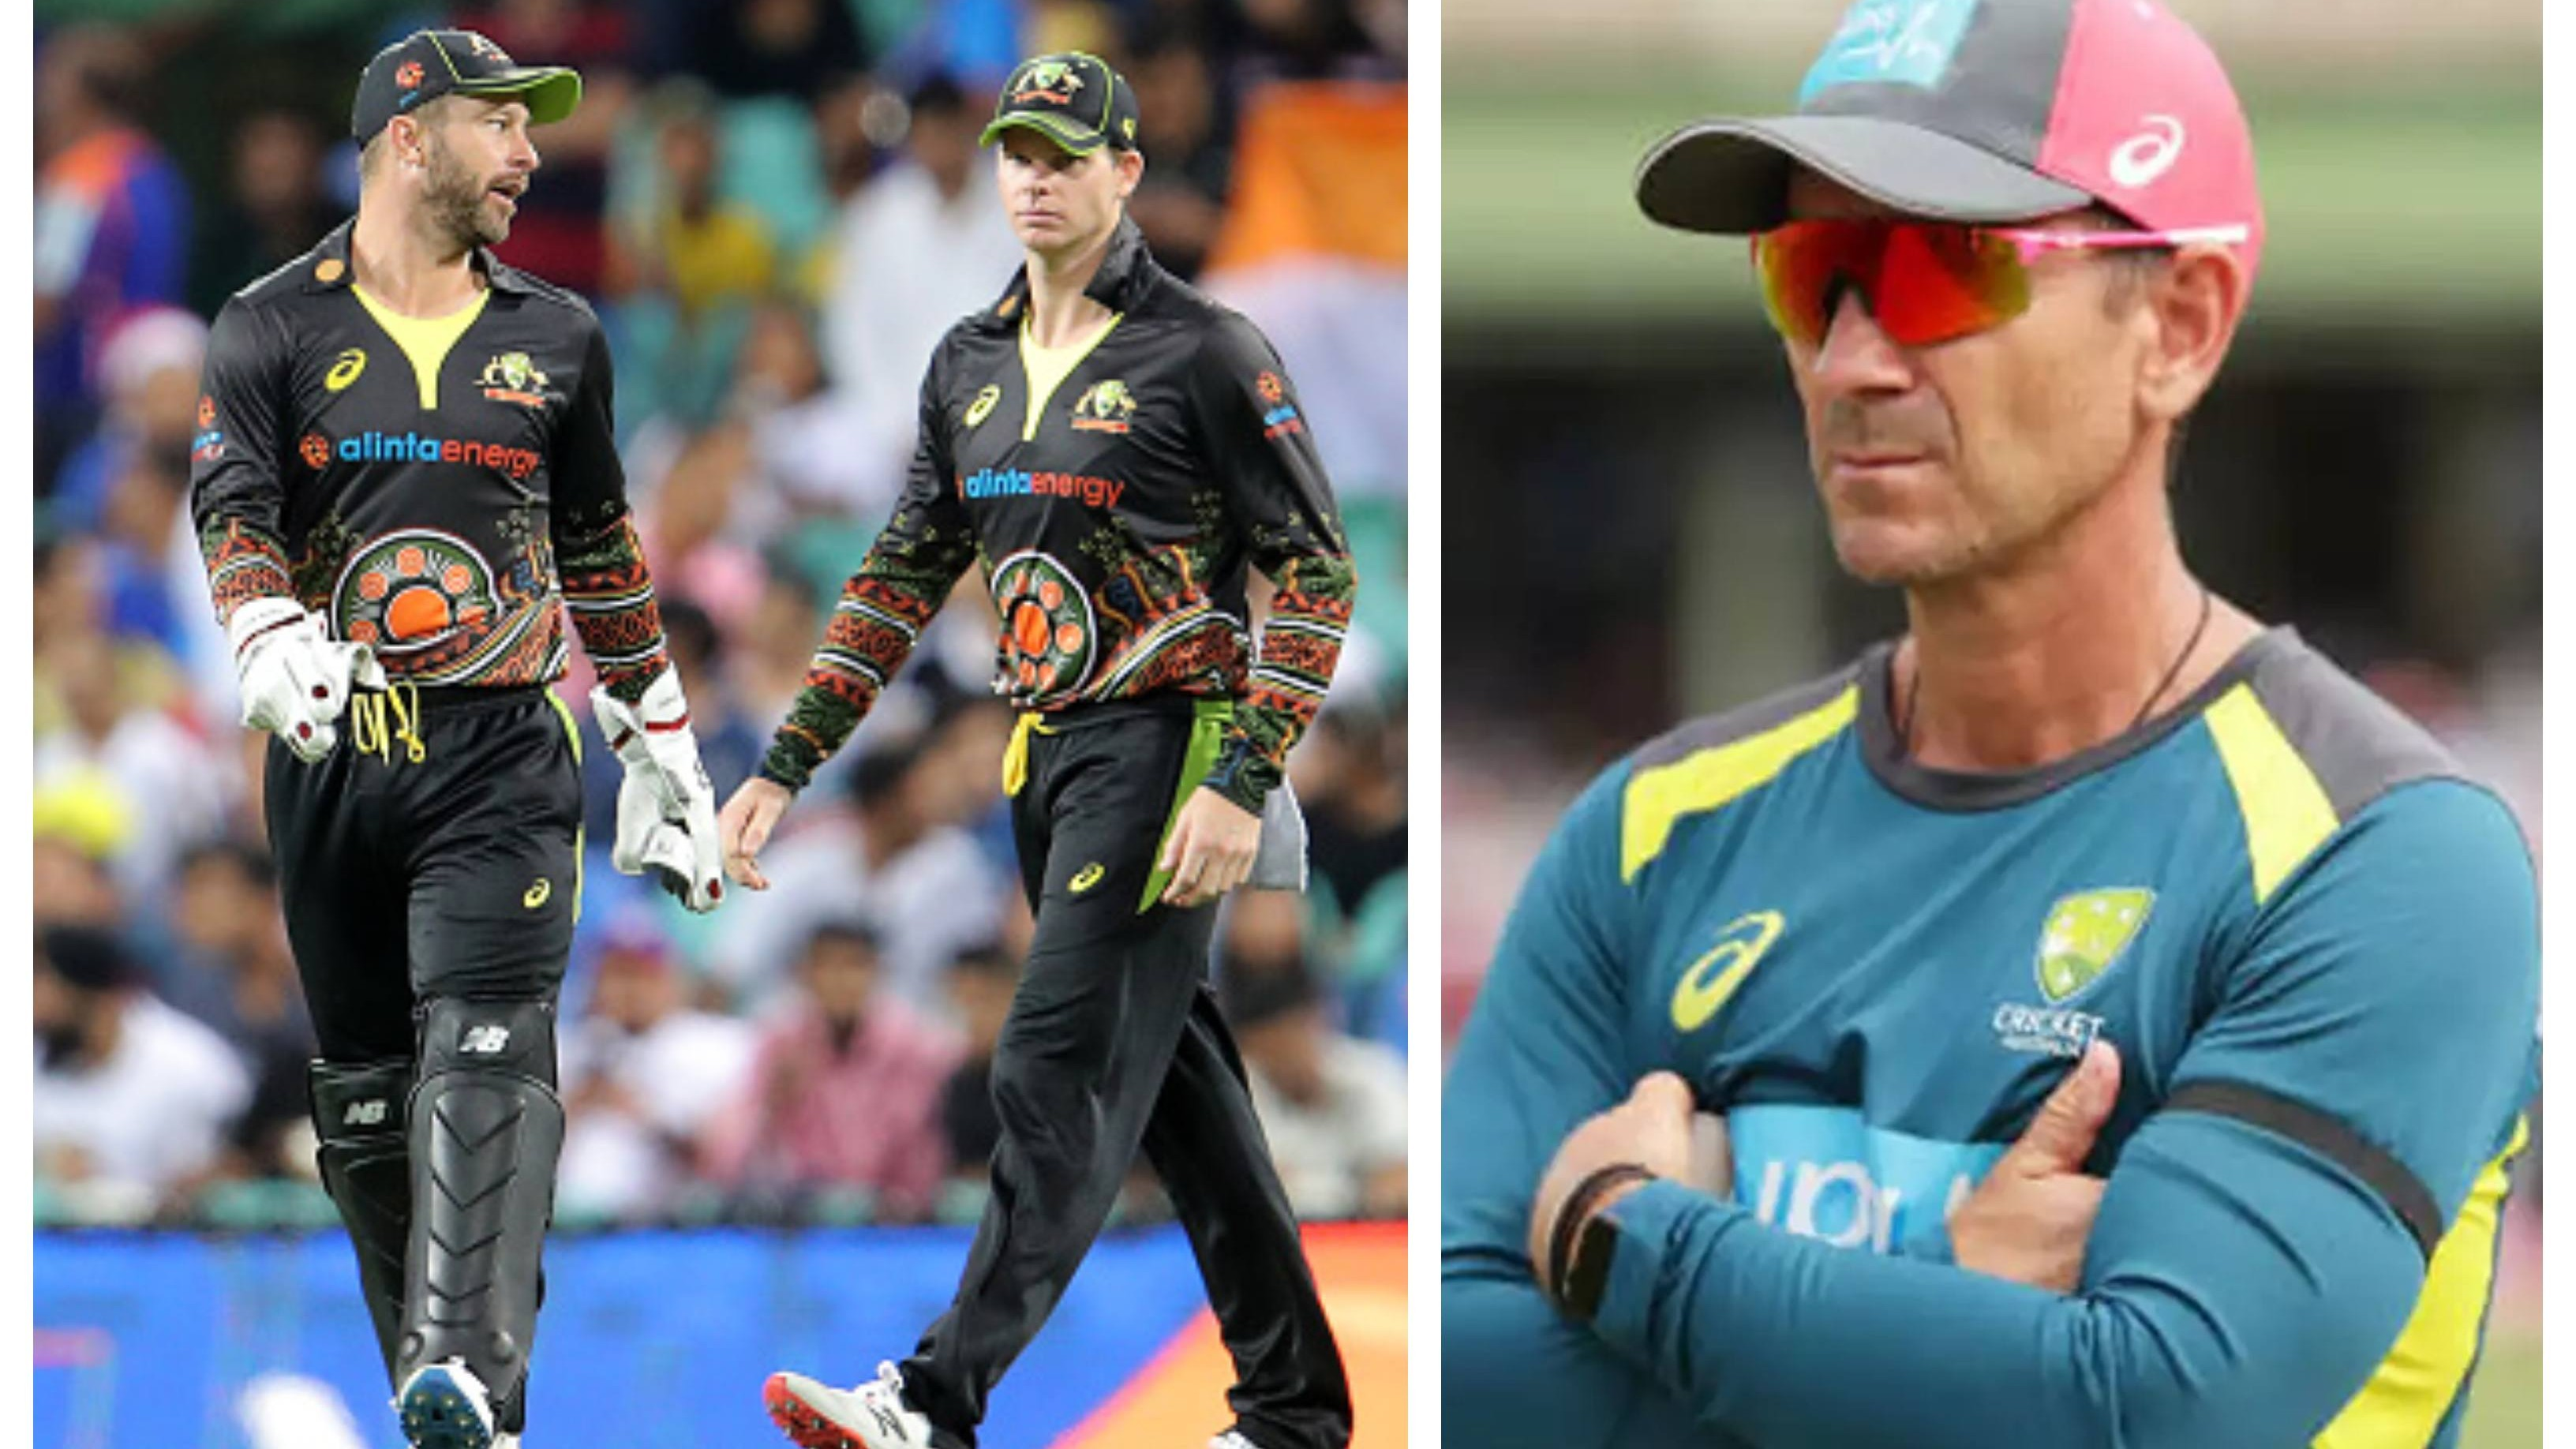 AUS v IND 2020-21: Justin Langer reveals why Steve Smith didn't lead Australia in 2nd T20I